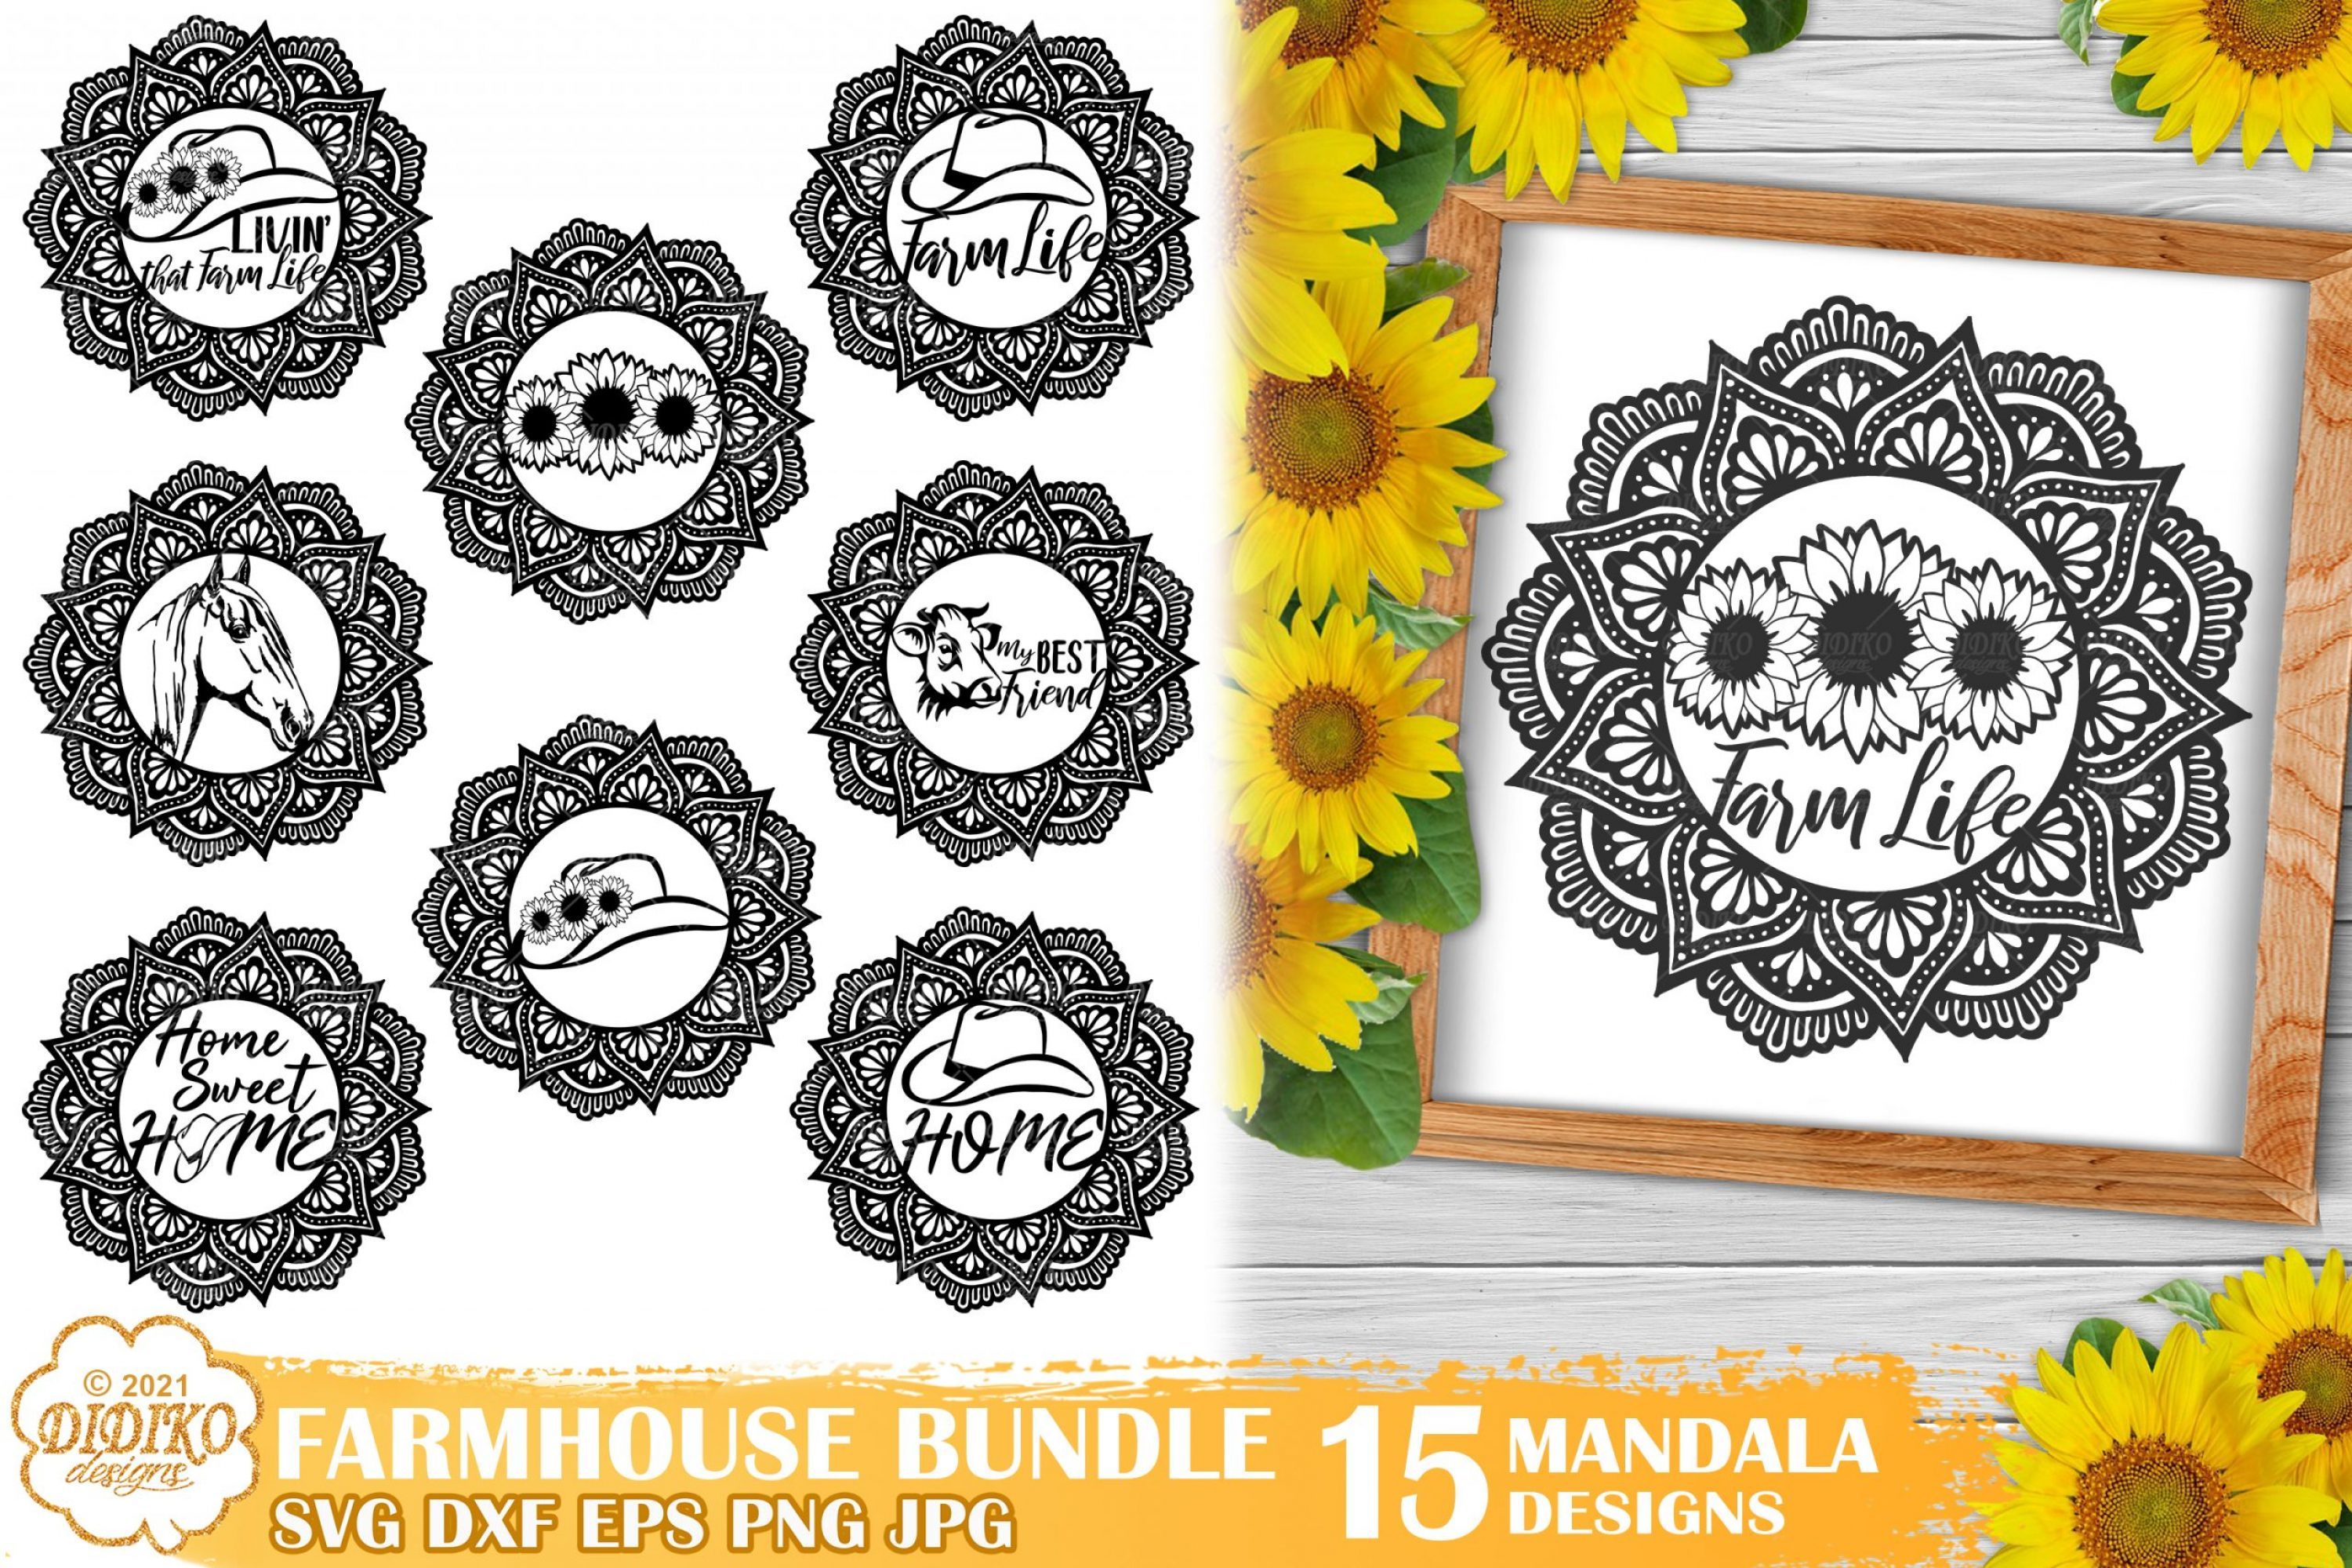 Farmhouse Mandala SVG Bundle, Farmhouse Signs Svg